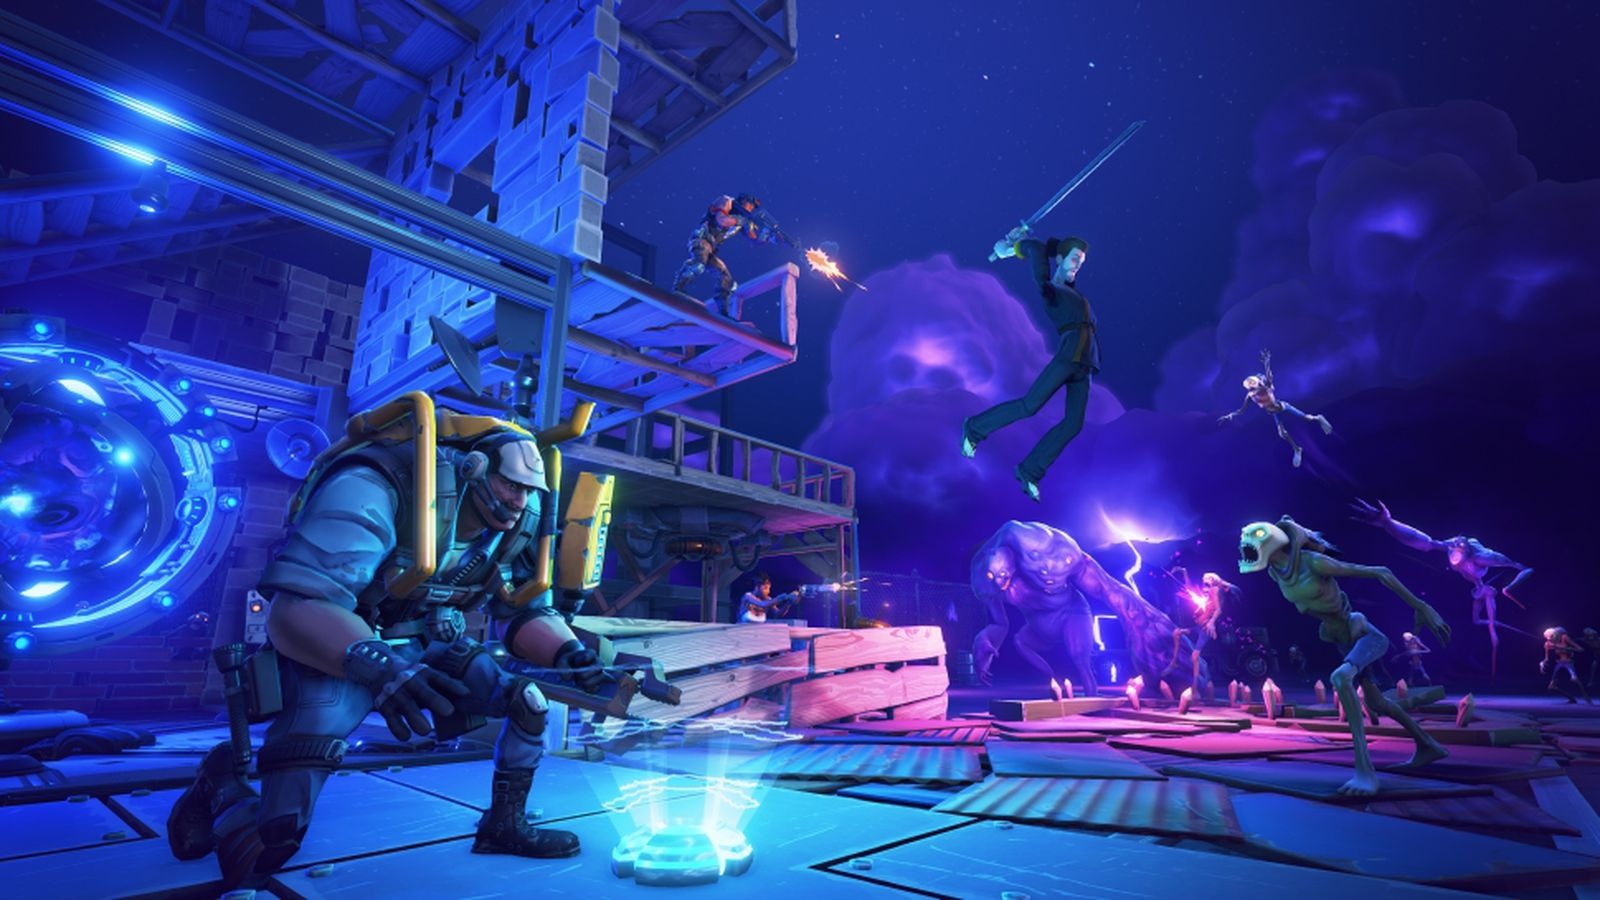 Fortnite kicks off second closed alpha with a livestream 1600x900